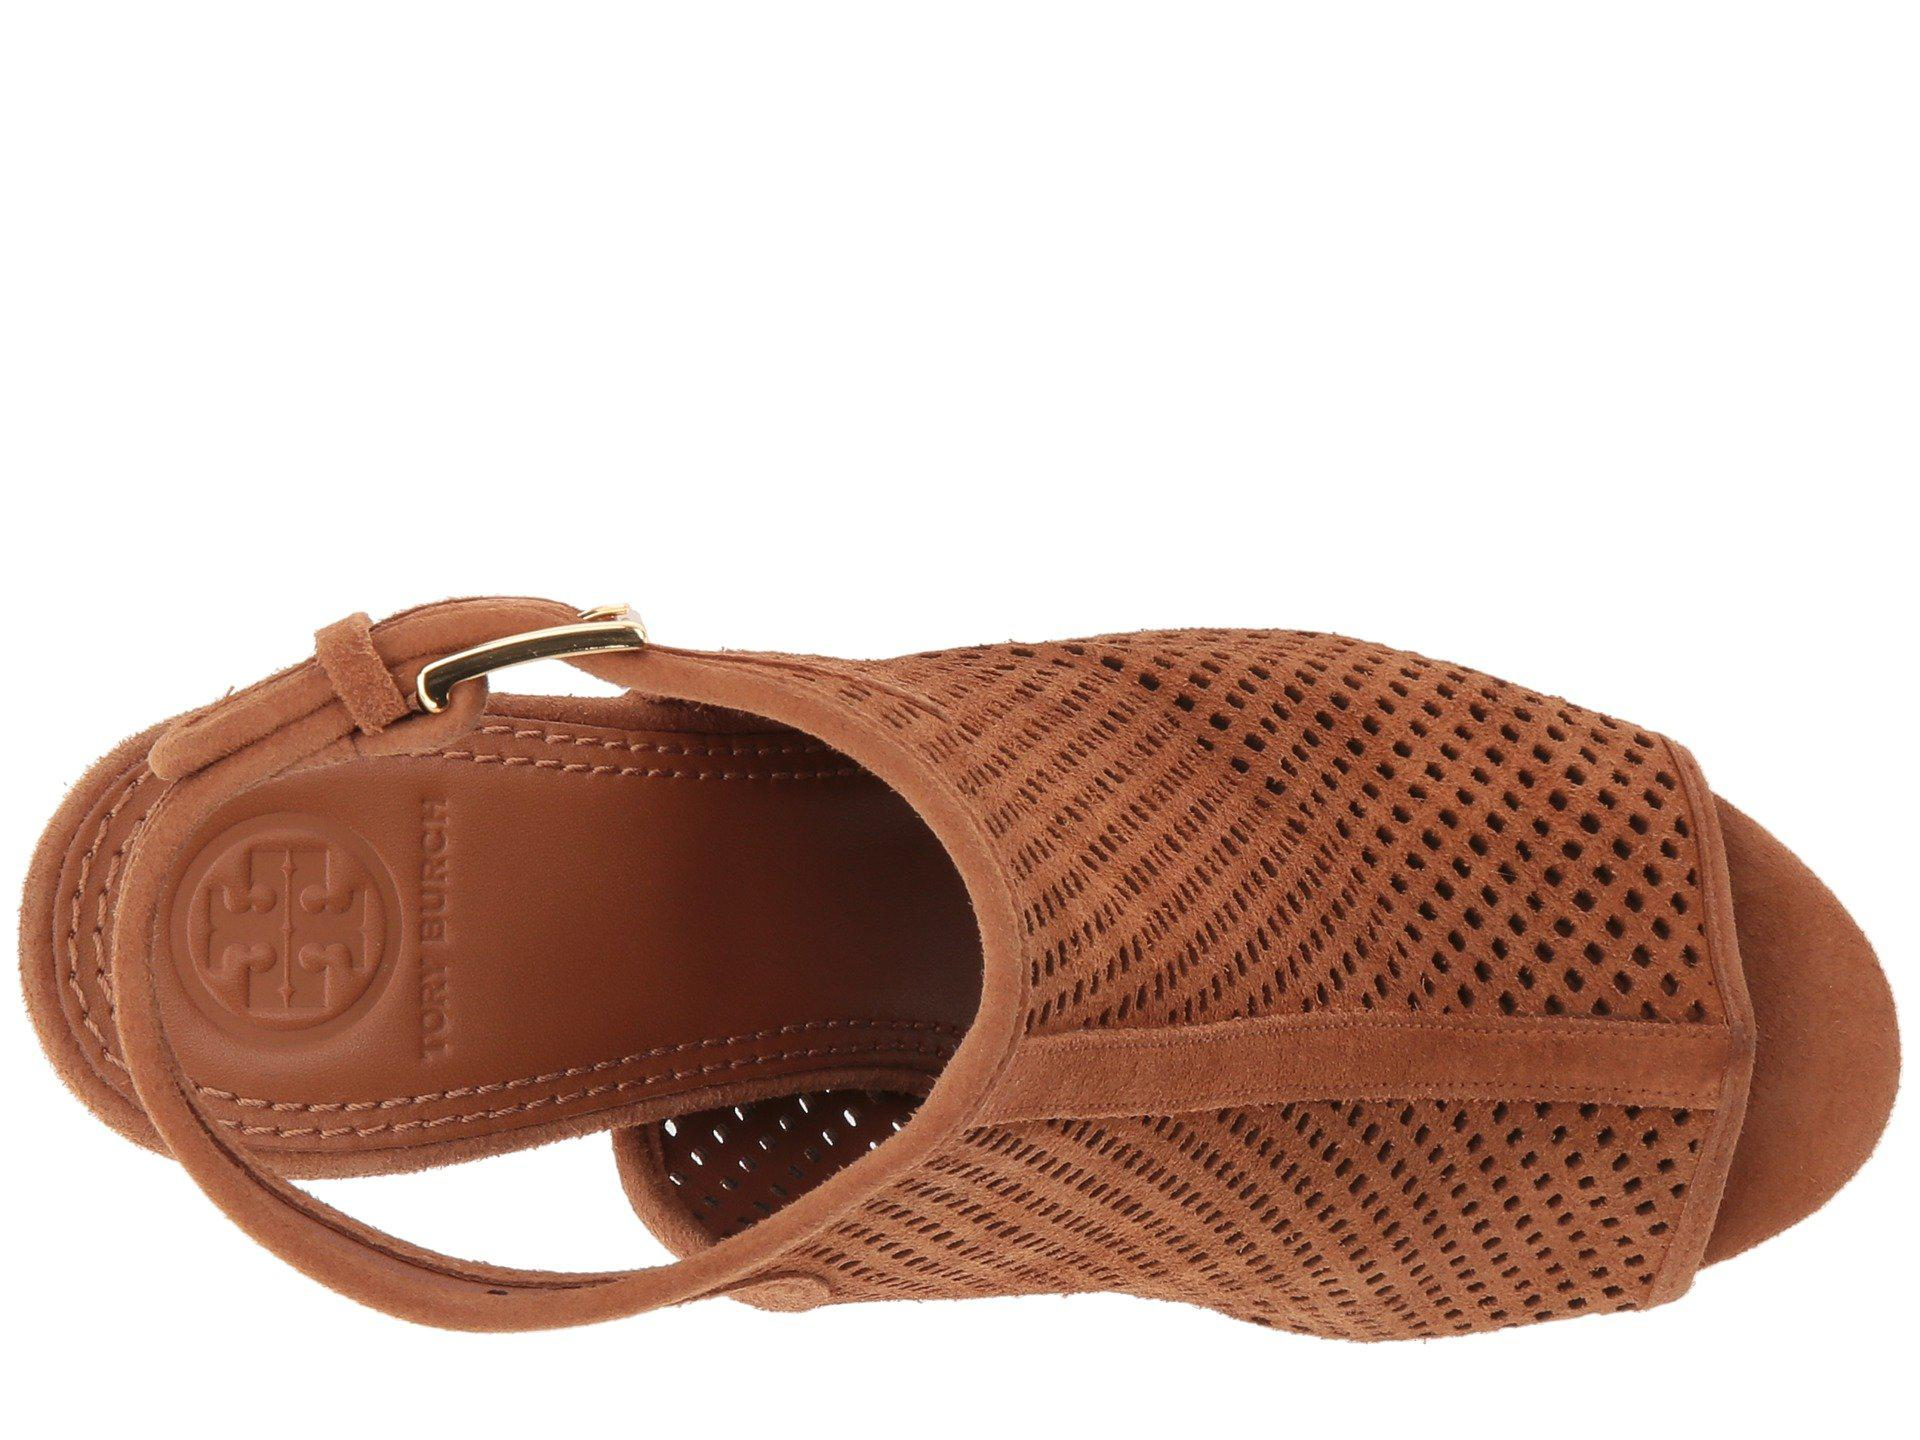 62d86c4db059 Lyst - Tory Burch Jesse 100mm Bootie in Brown